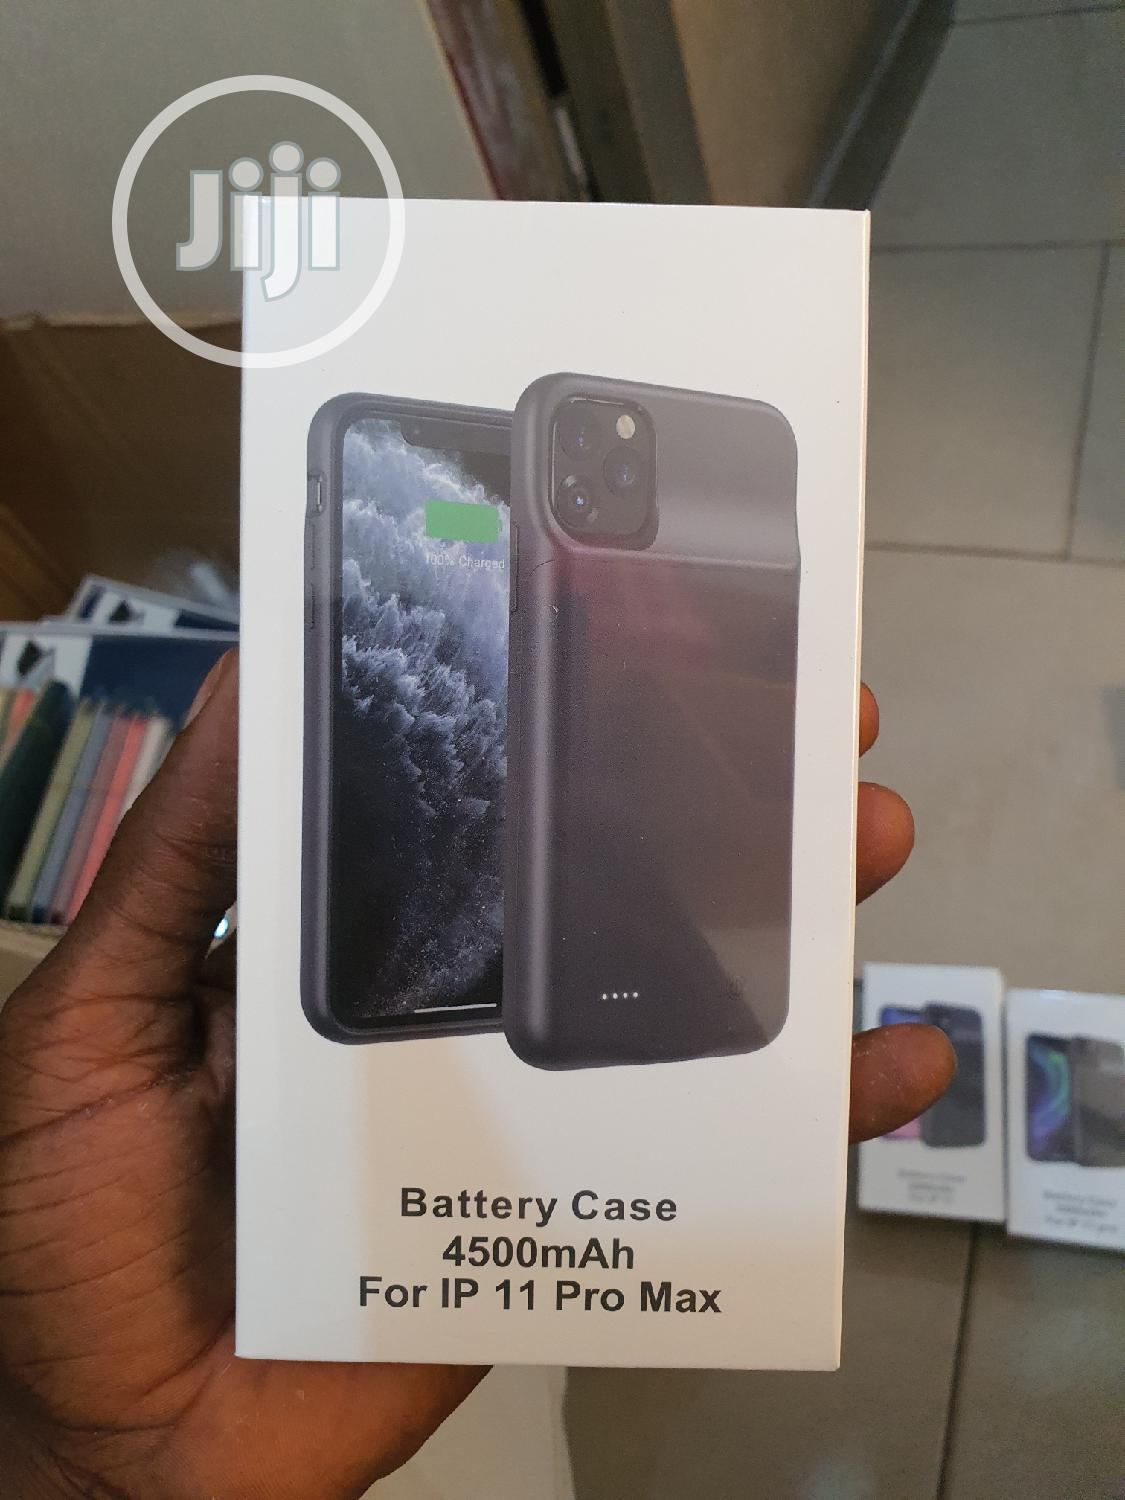 Battery Case For iPhone 11 Pro Max 4500mah